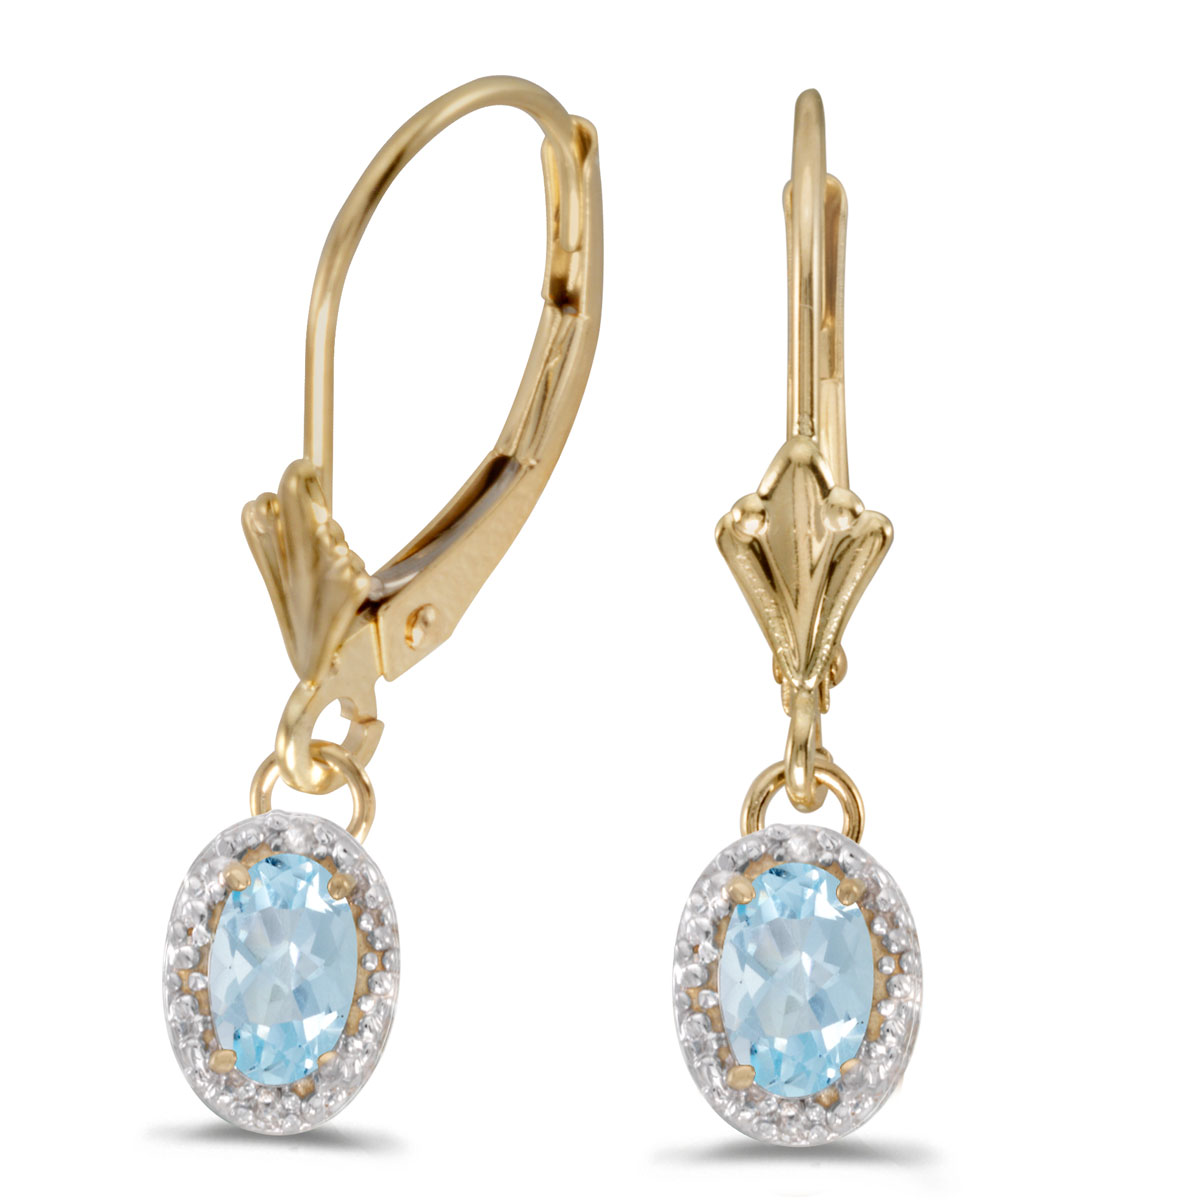 Beautiful 10k yellow gold leverback earrings with stunning 6x4 mm aquamarines complemented with bright diamonds.